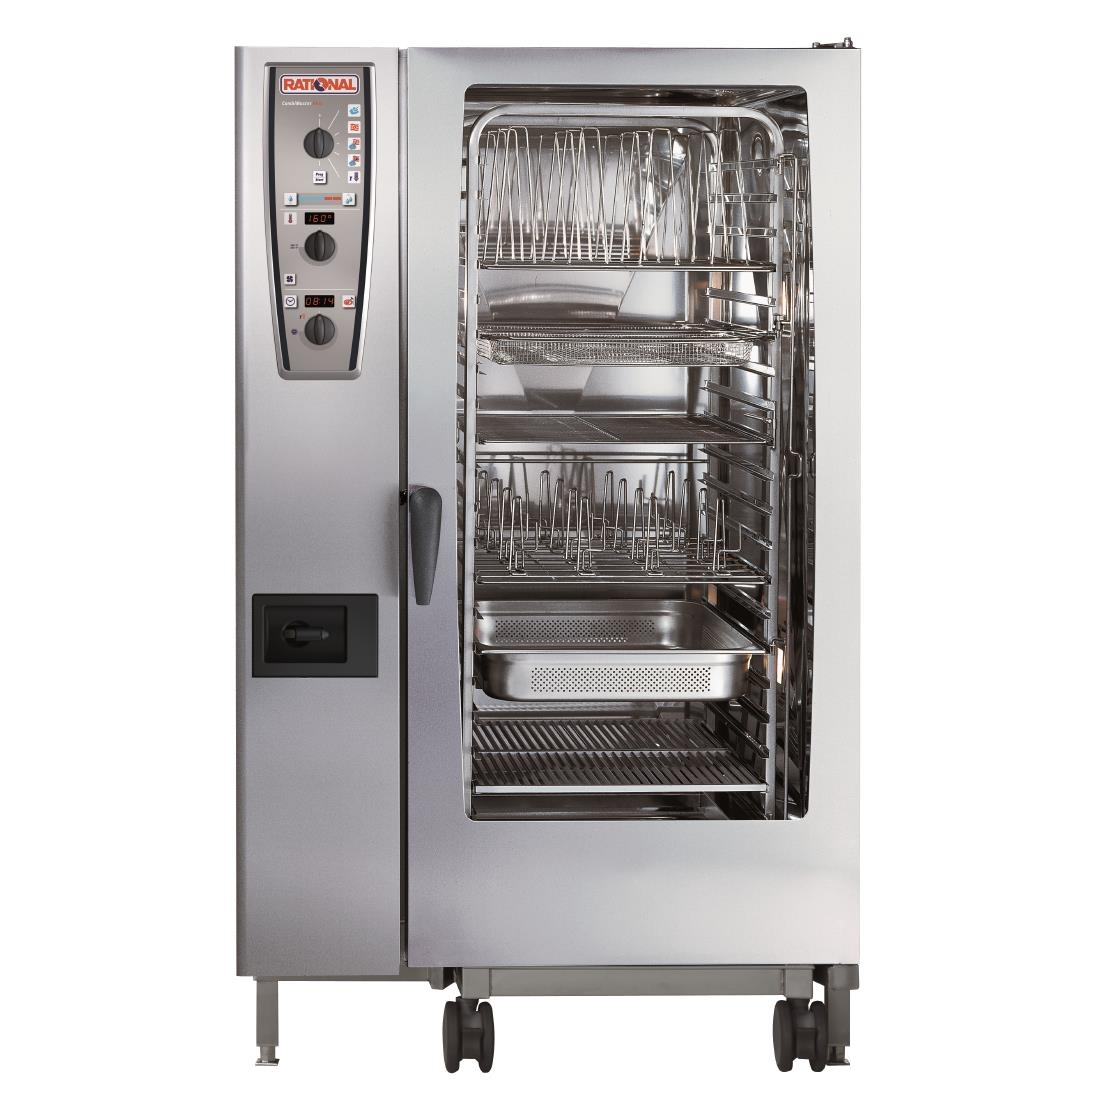 ... rational-combimaster-oven-201-electric